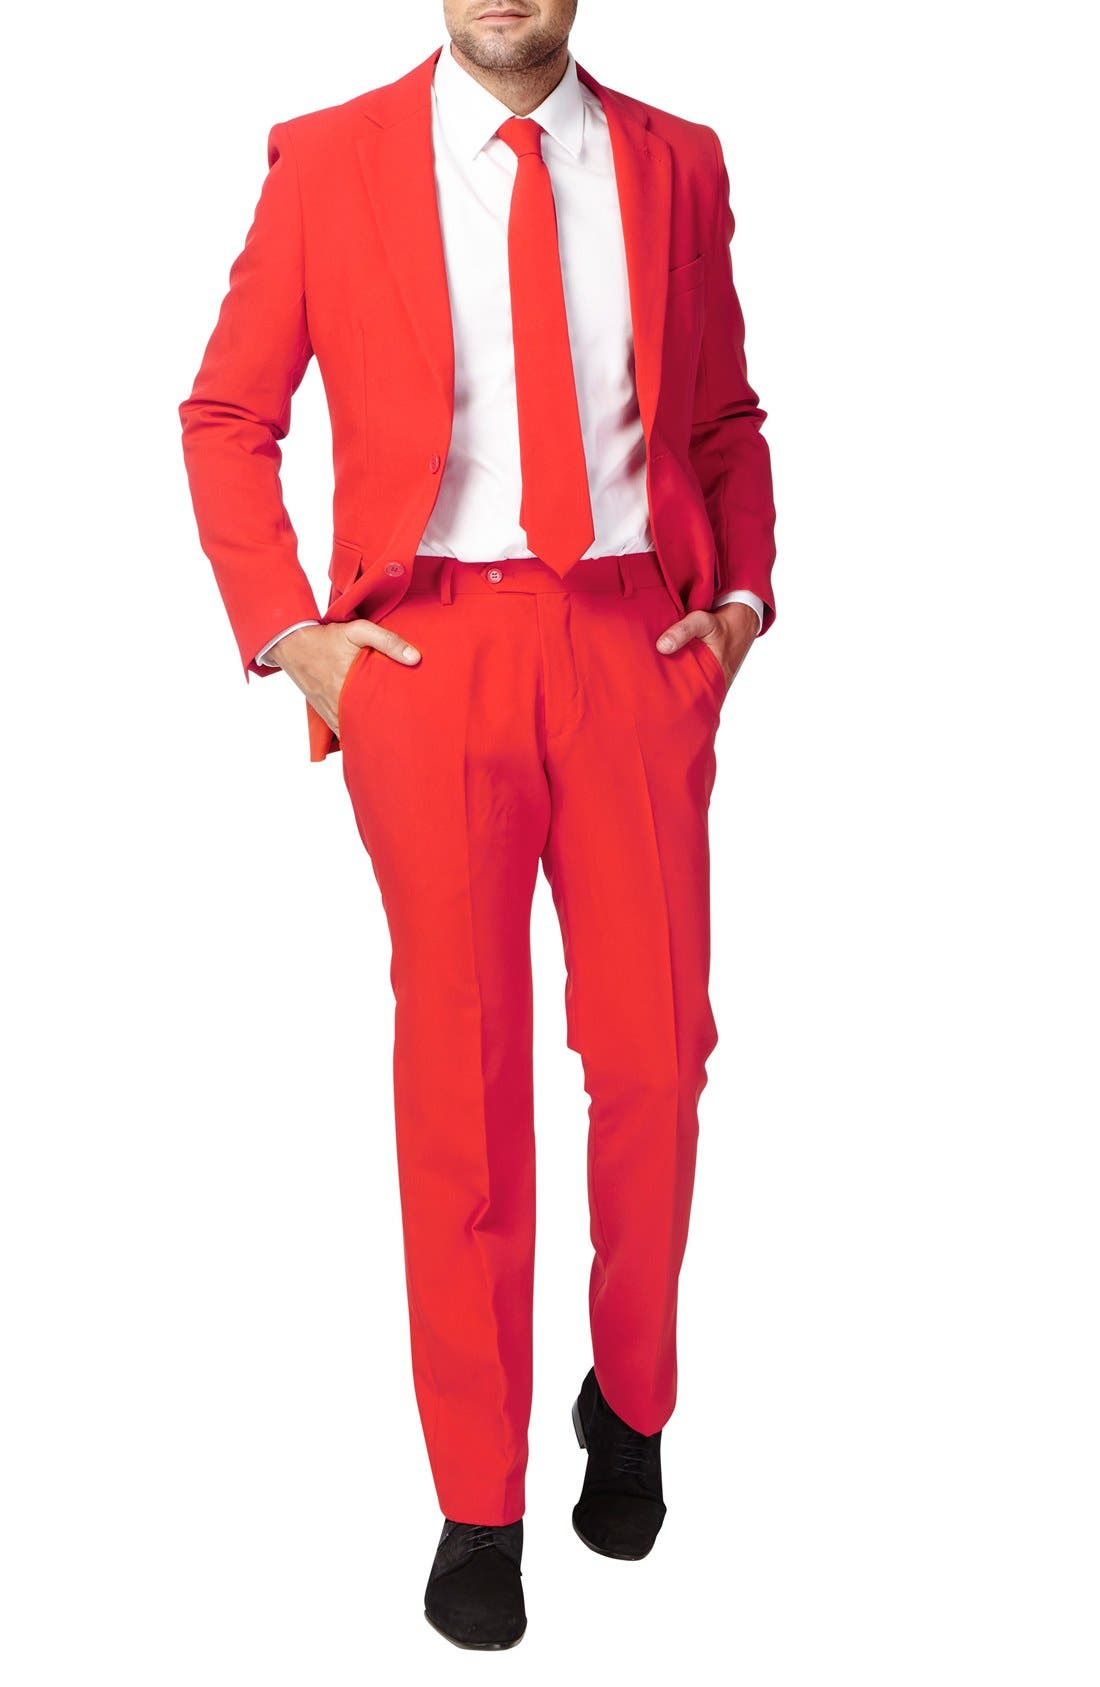 OPPOSUITS OppoSuit 'Red Devil' Trim Fit Two-Piece Suit